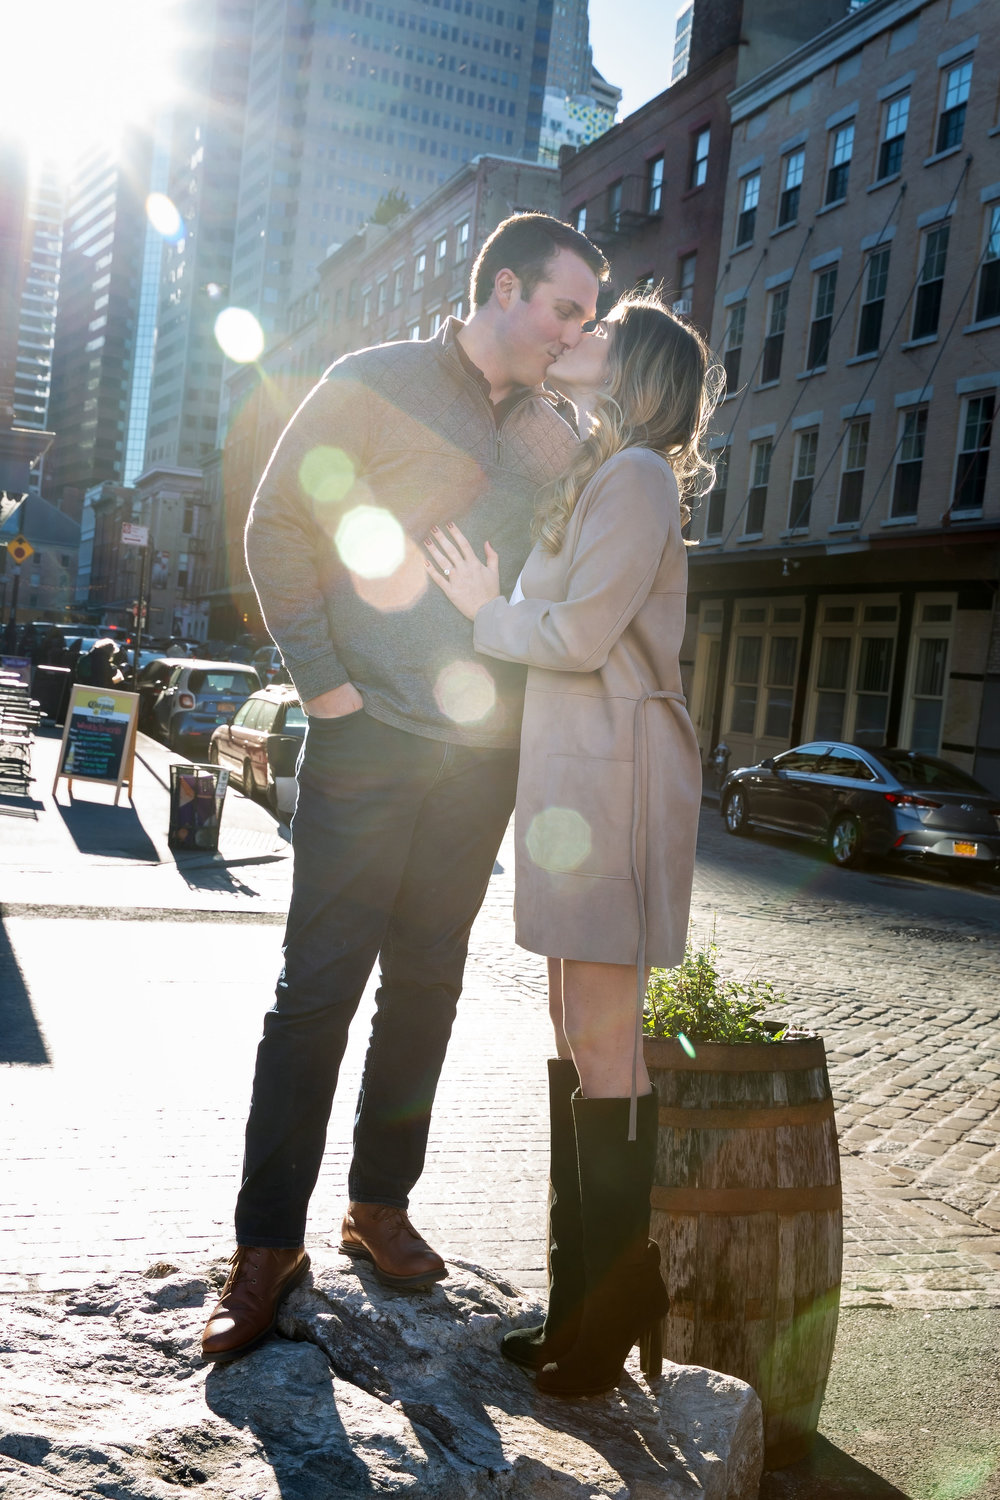 seaport-engagement-nyc-157.jpg